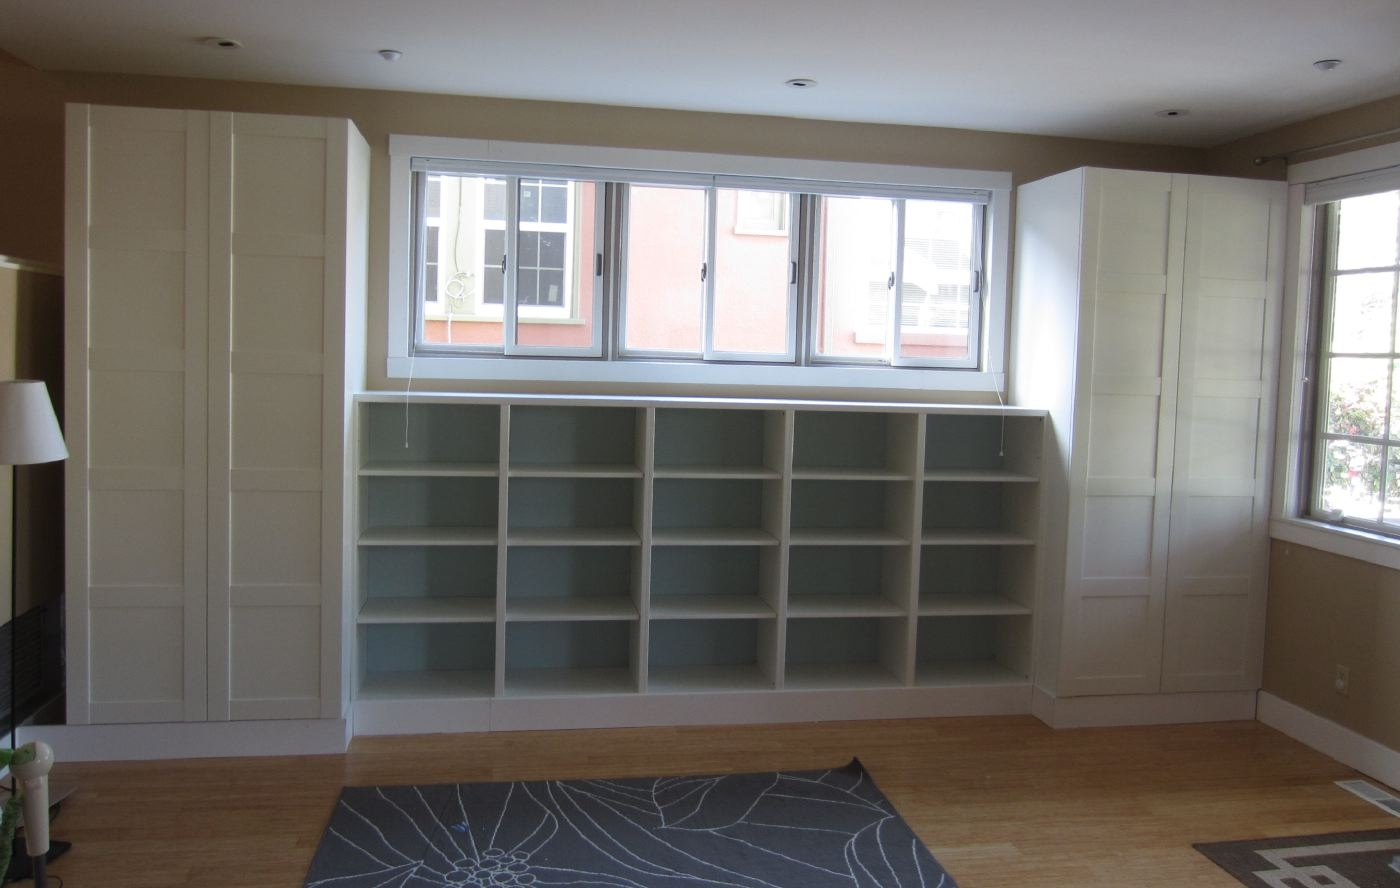 Diy Built Ins Using Ikea Besta Shelves And Pax Wardrobes Throughout Built In Cupboard Shelving (View 10 of 15)